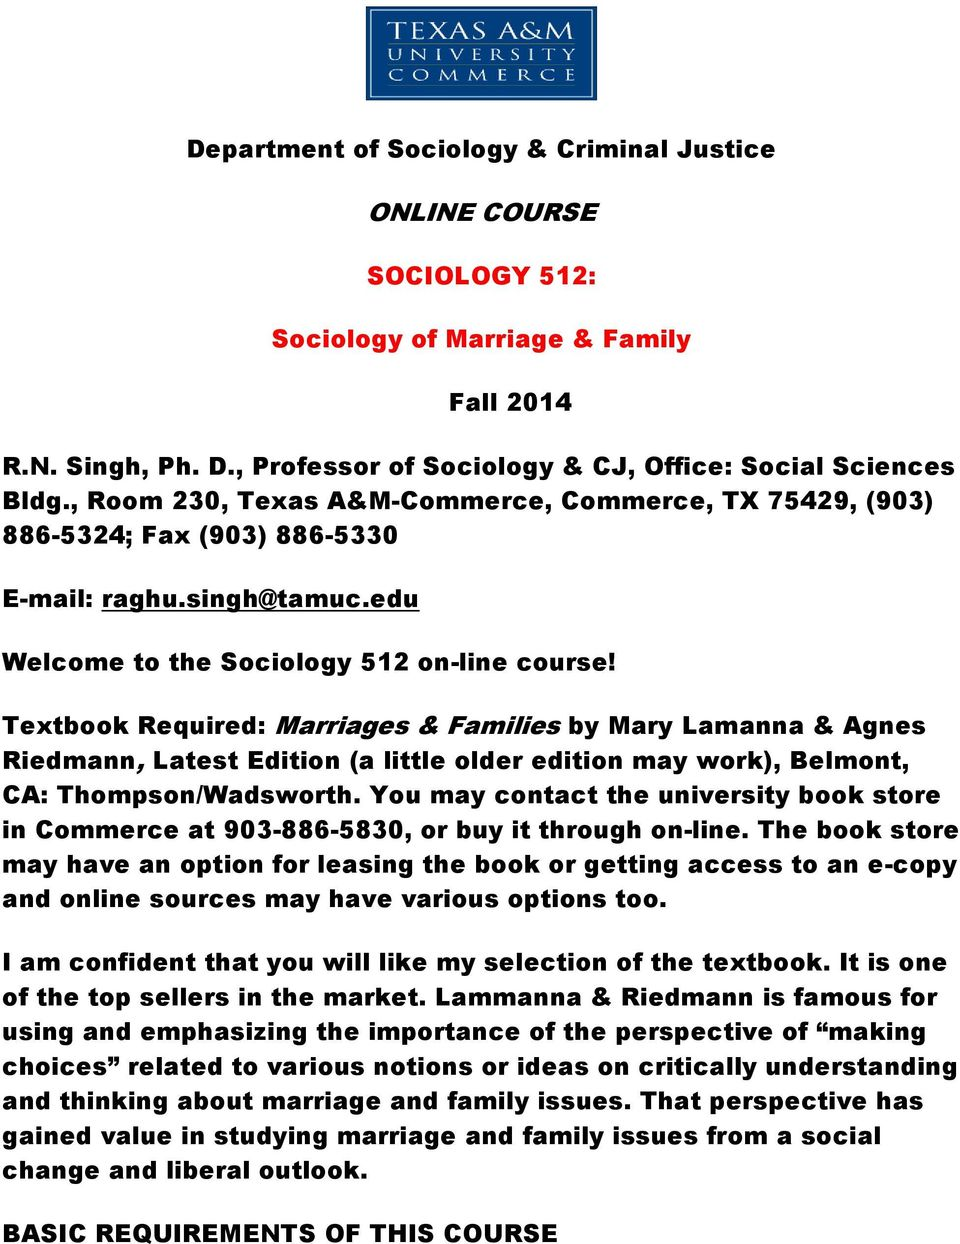 Textbook Required: Marriages & Families by Mary Lamanna & Agnes Riedmann, Latest Edition (a little older edition may work), Belmont, CA: Thompson/Wadsworth.